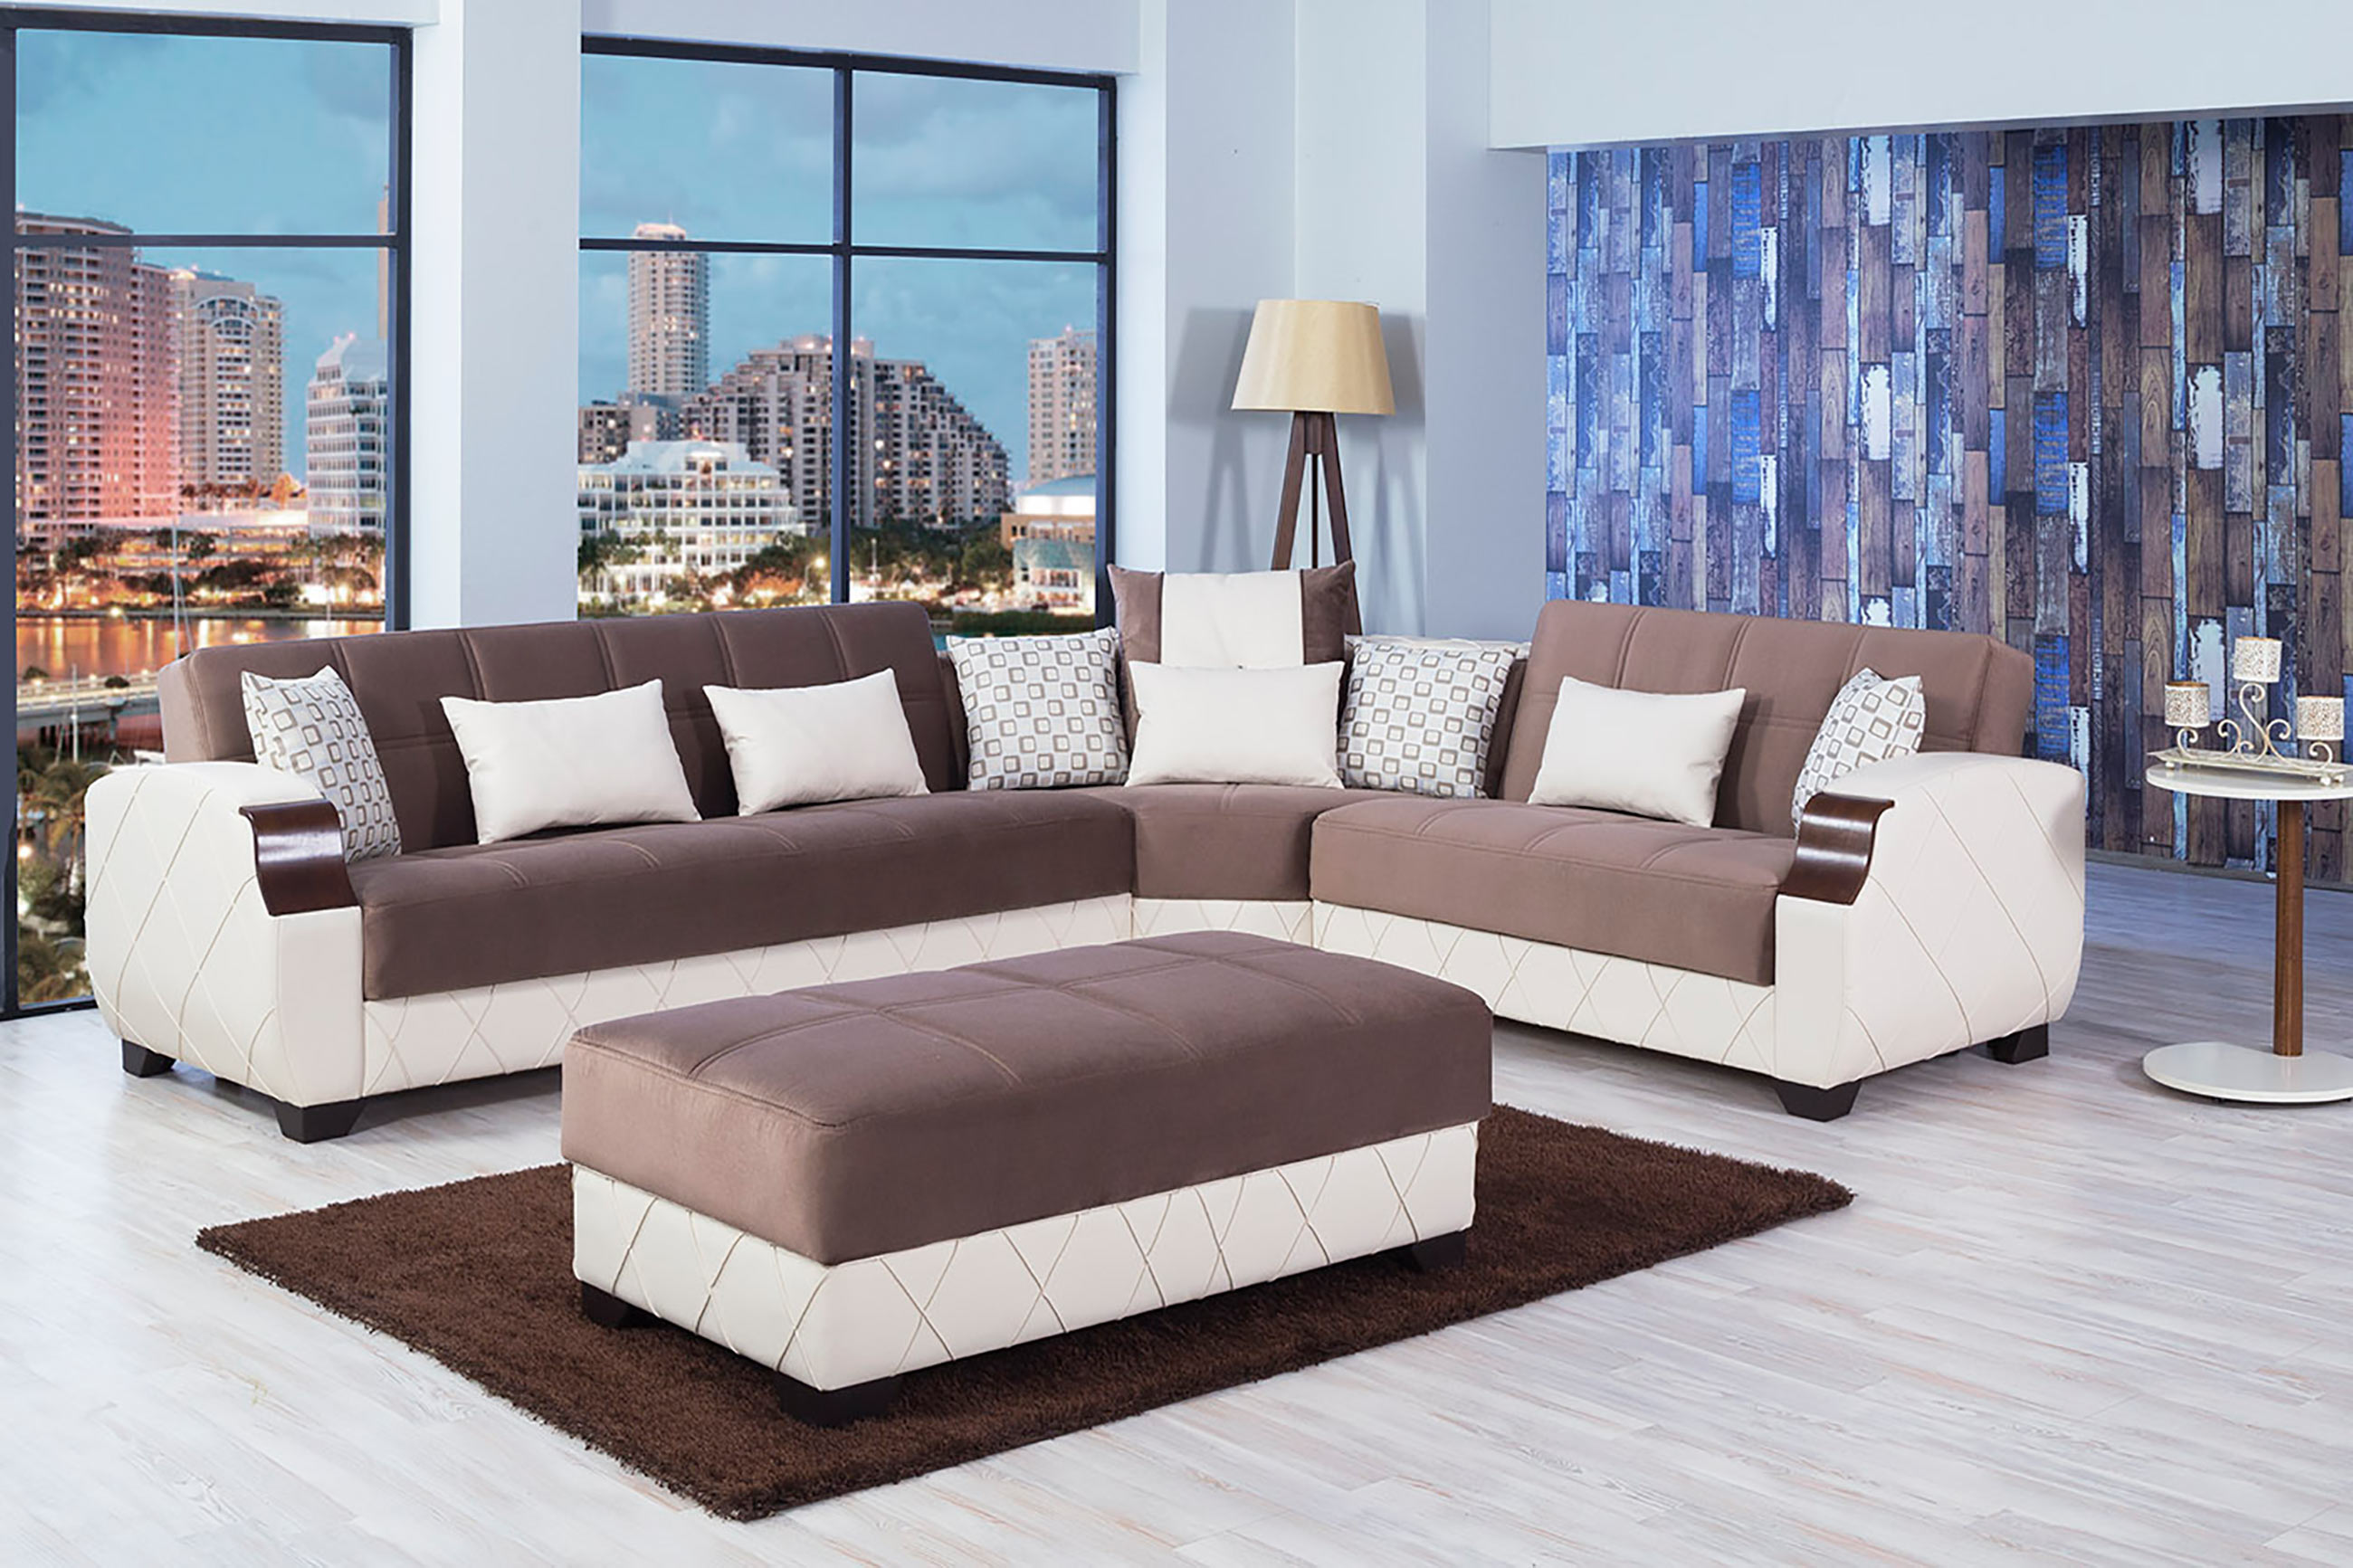 Molina Lyon Brown Sectional Sofa by Casamode